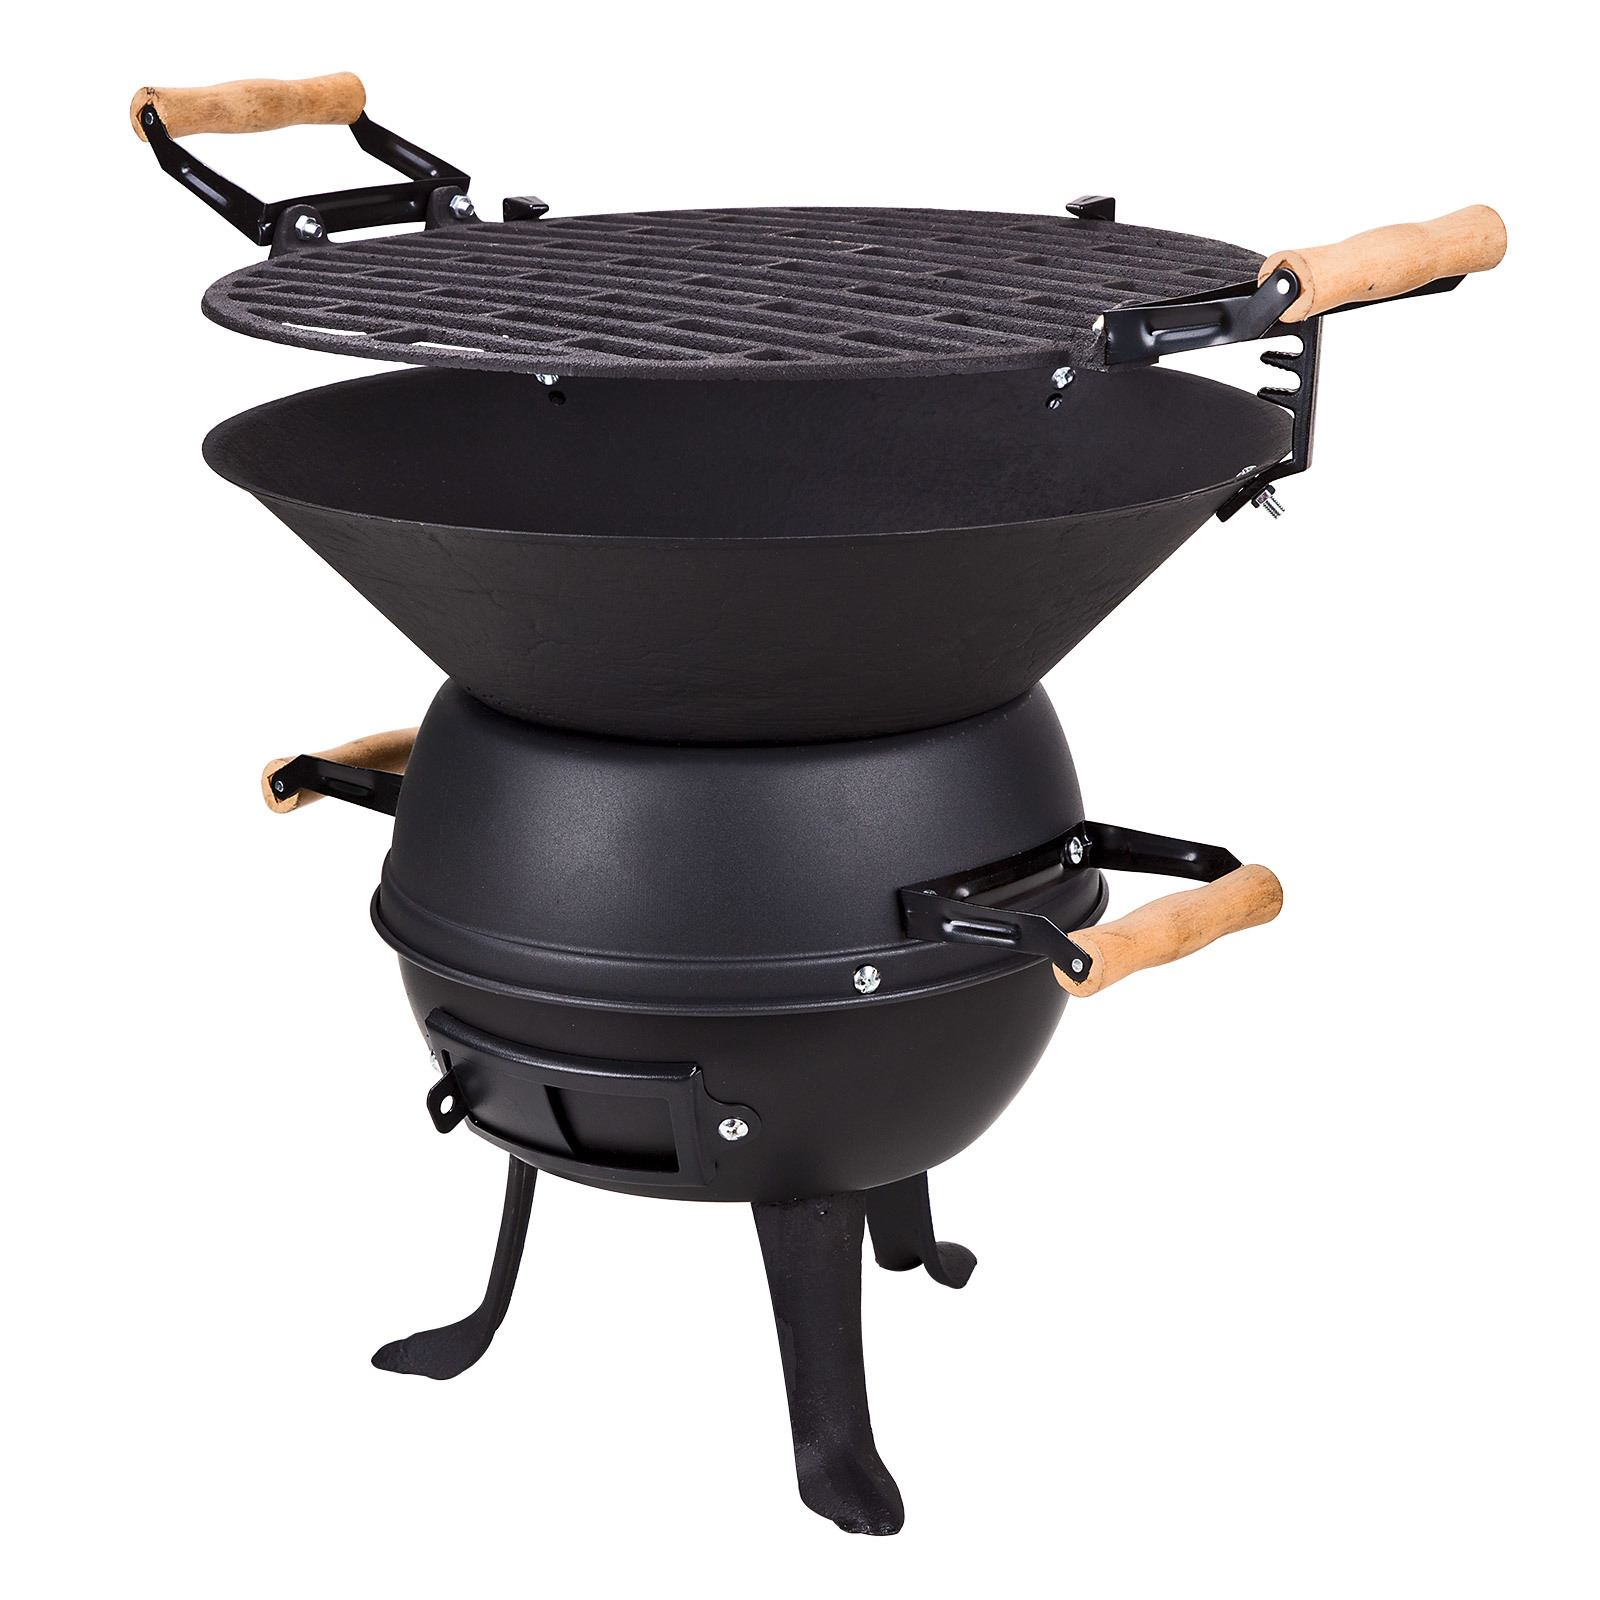 grillfass grill holzkohlegrill barbecue bbq grillrost 35cm. Black Bedroom Furniture Sets. Home Design Ideas